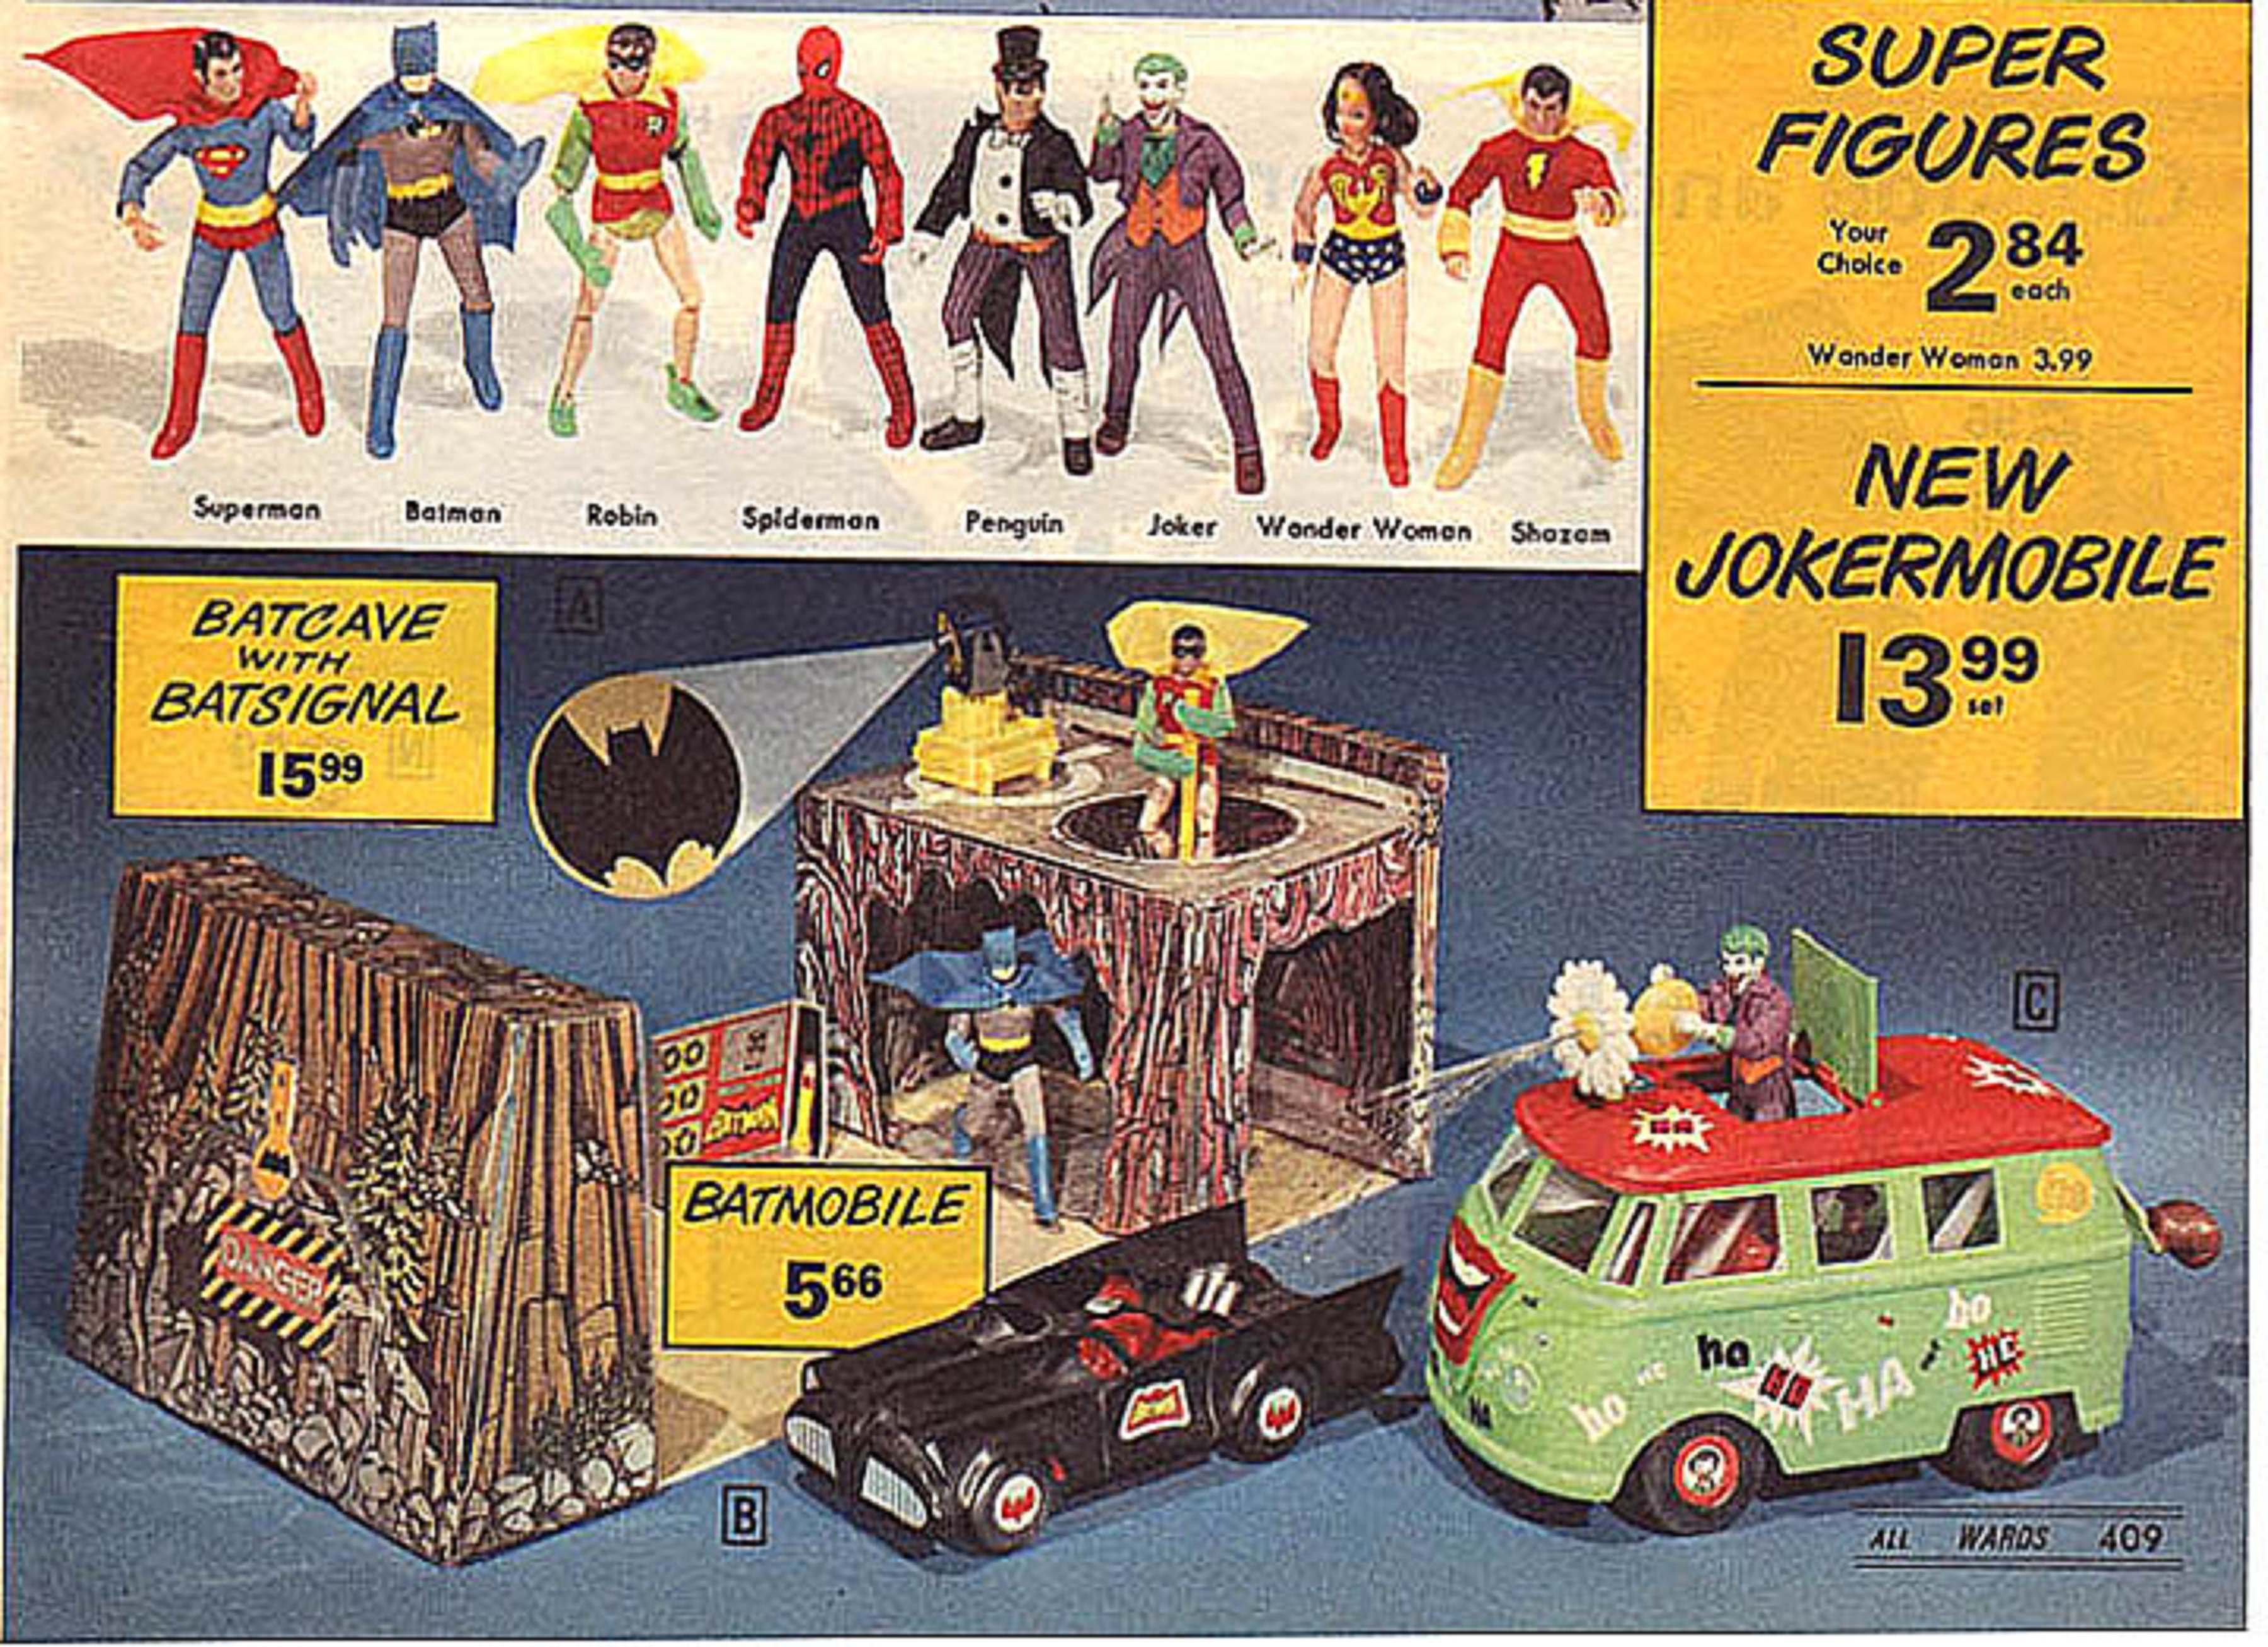 The Great Mego Playsets Of The 1970s Flashbak